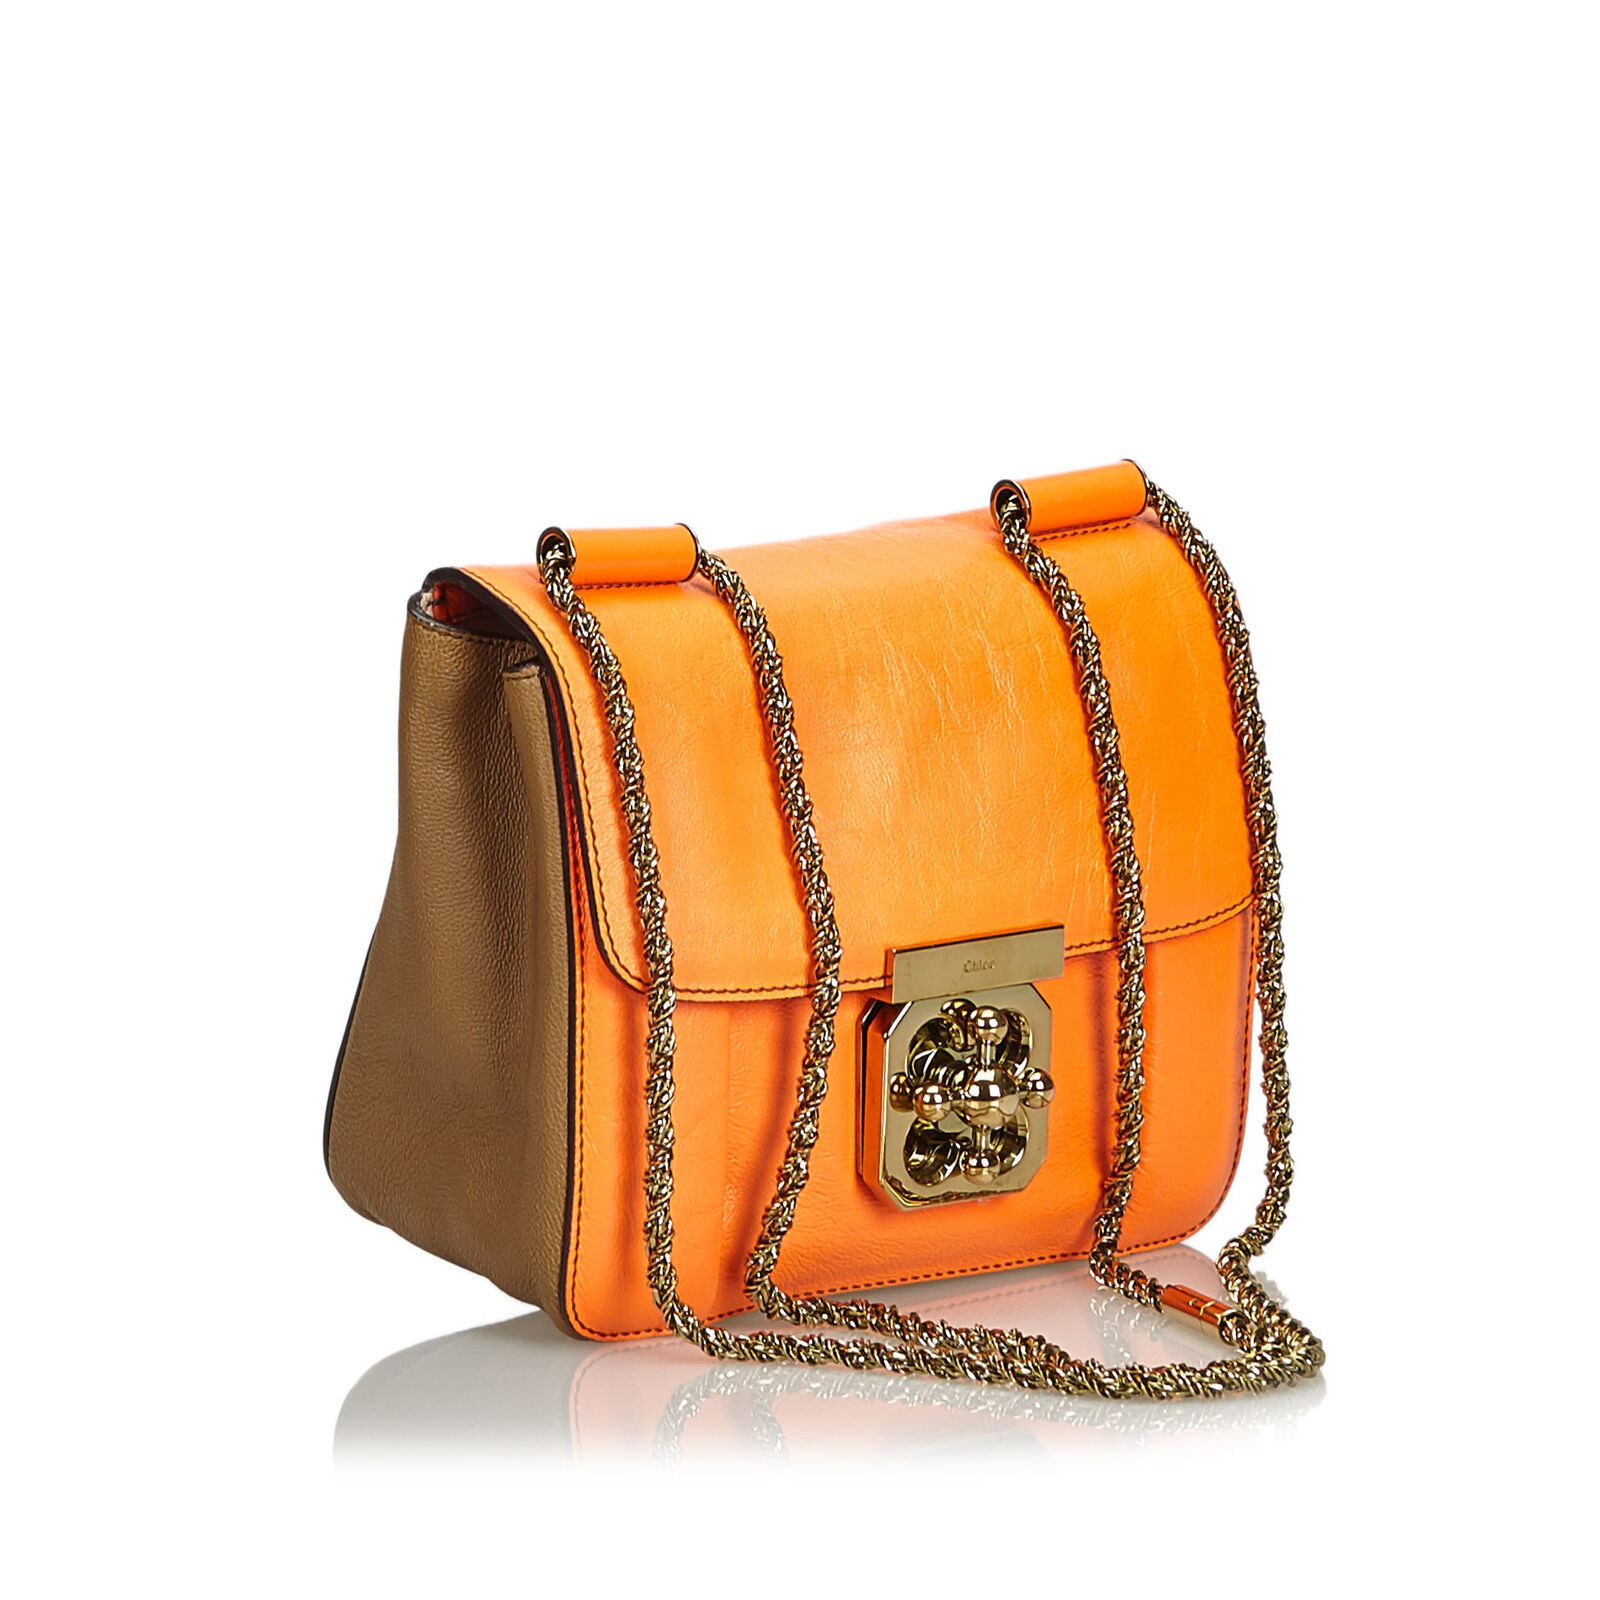 Authentic Chloe Orange Leather Elsie Crossbody Bag France